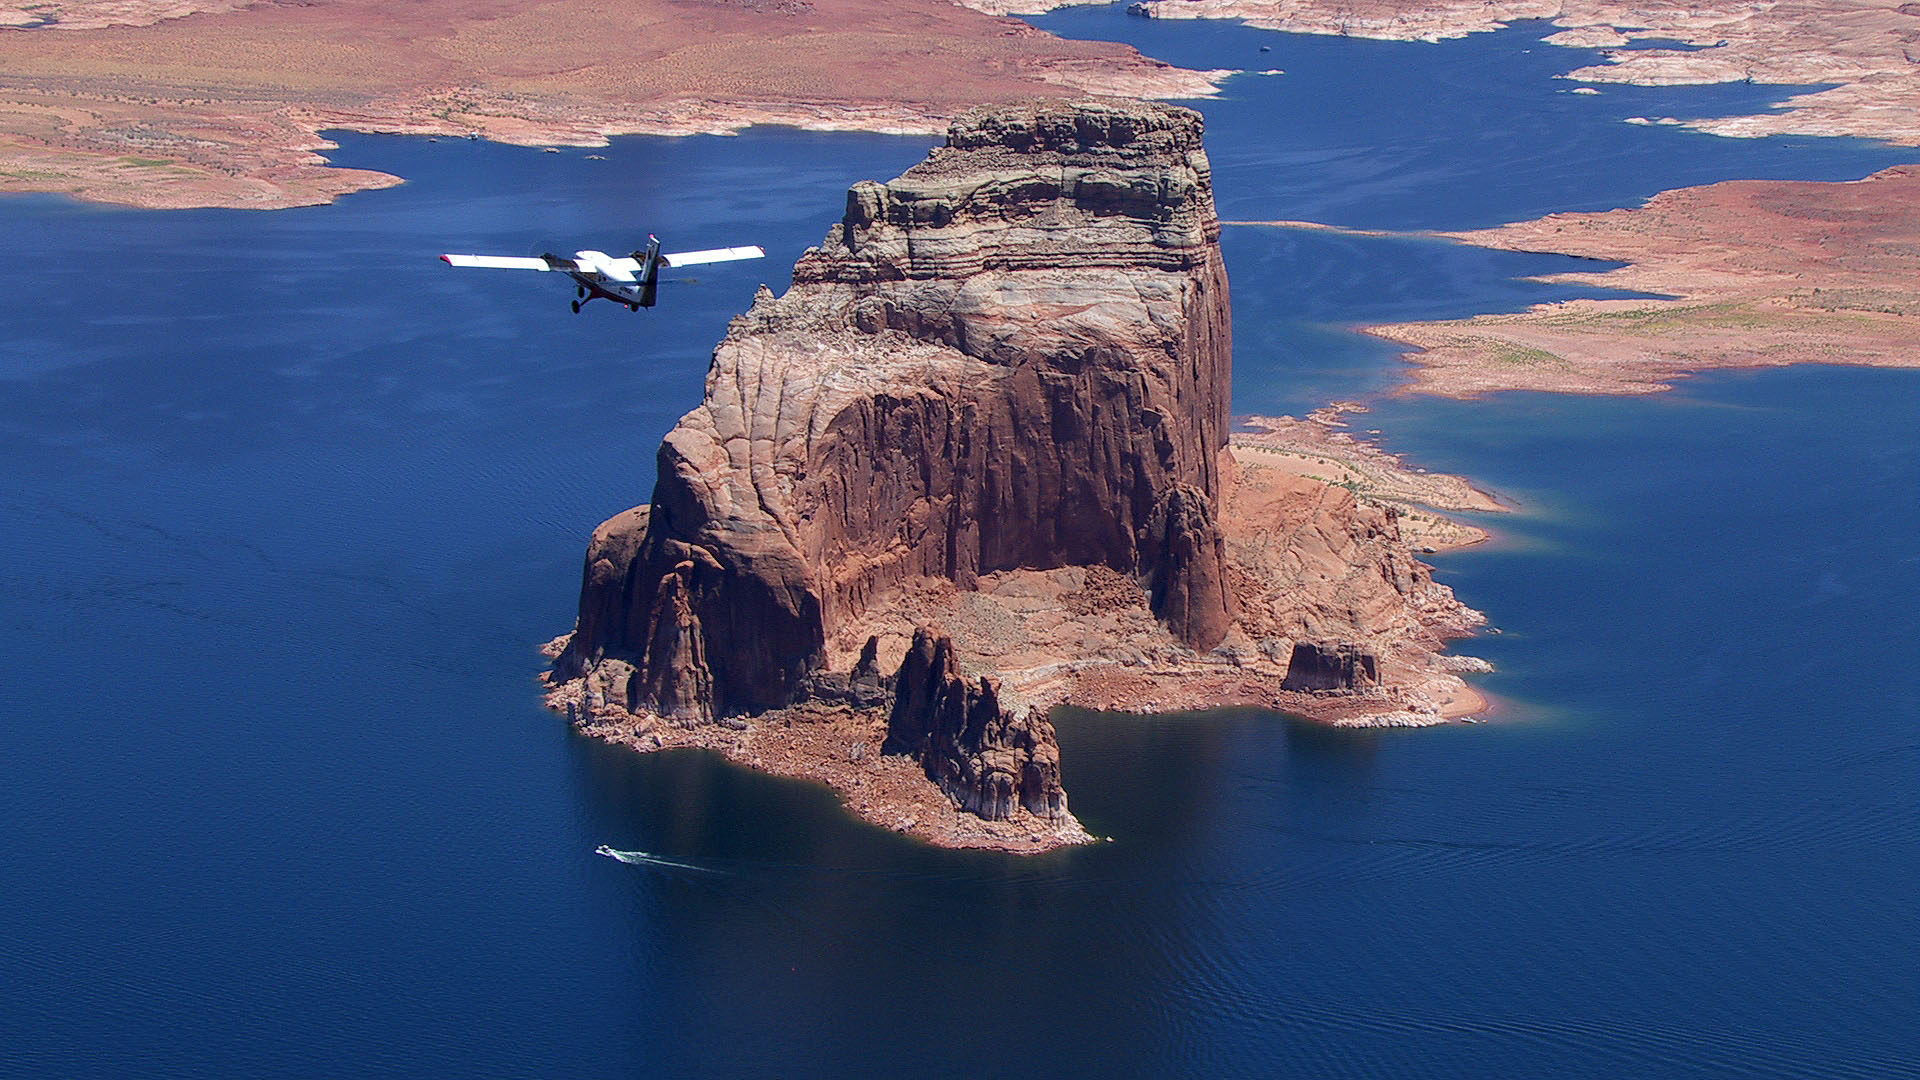 An airplane soars over a blue lake surrounded by desert.